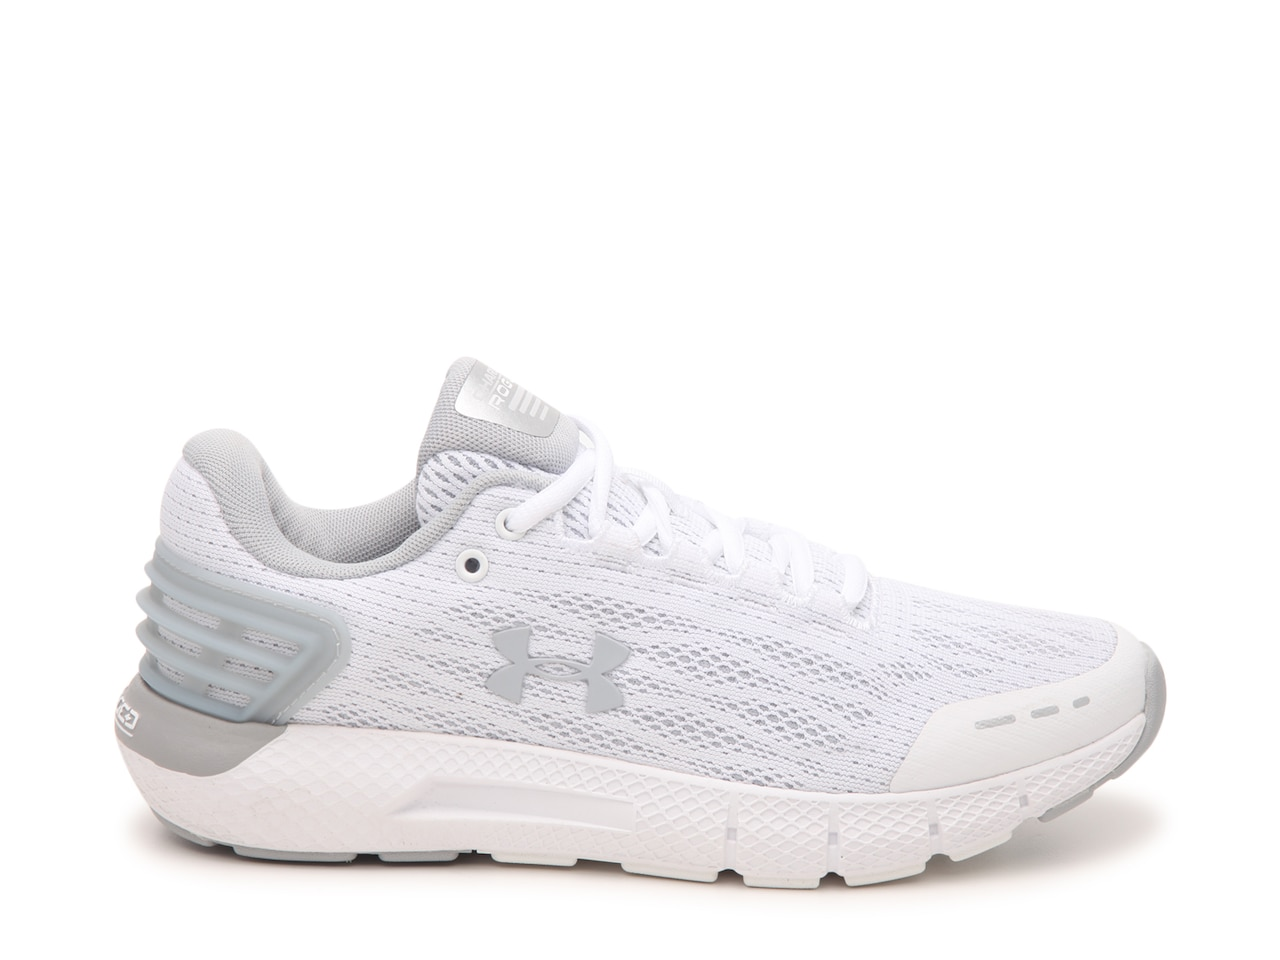 CHARGED ROGUE LIGHTWEIGHT RUNNING SHOE - WOMEN'S by CHARGED ROGUE, available on dsw.com for $79.99 Alessandra Ambrosio Shoes Exact Product